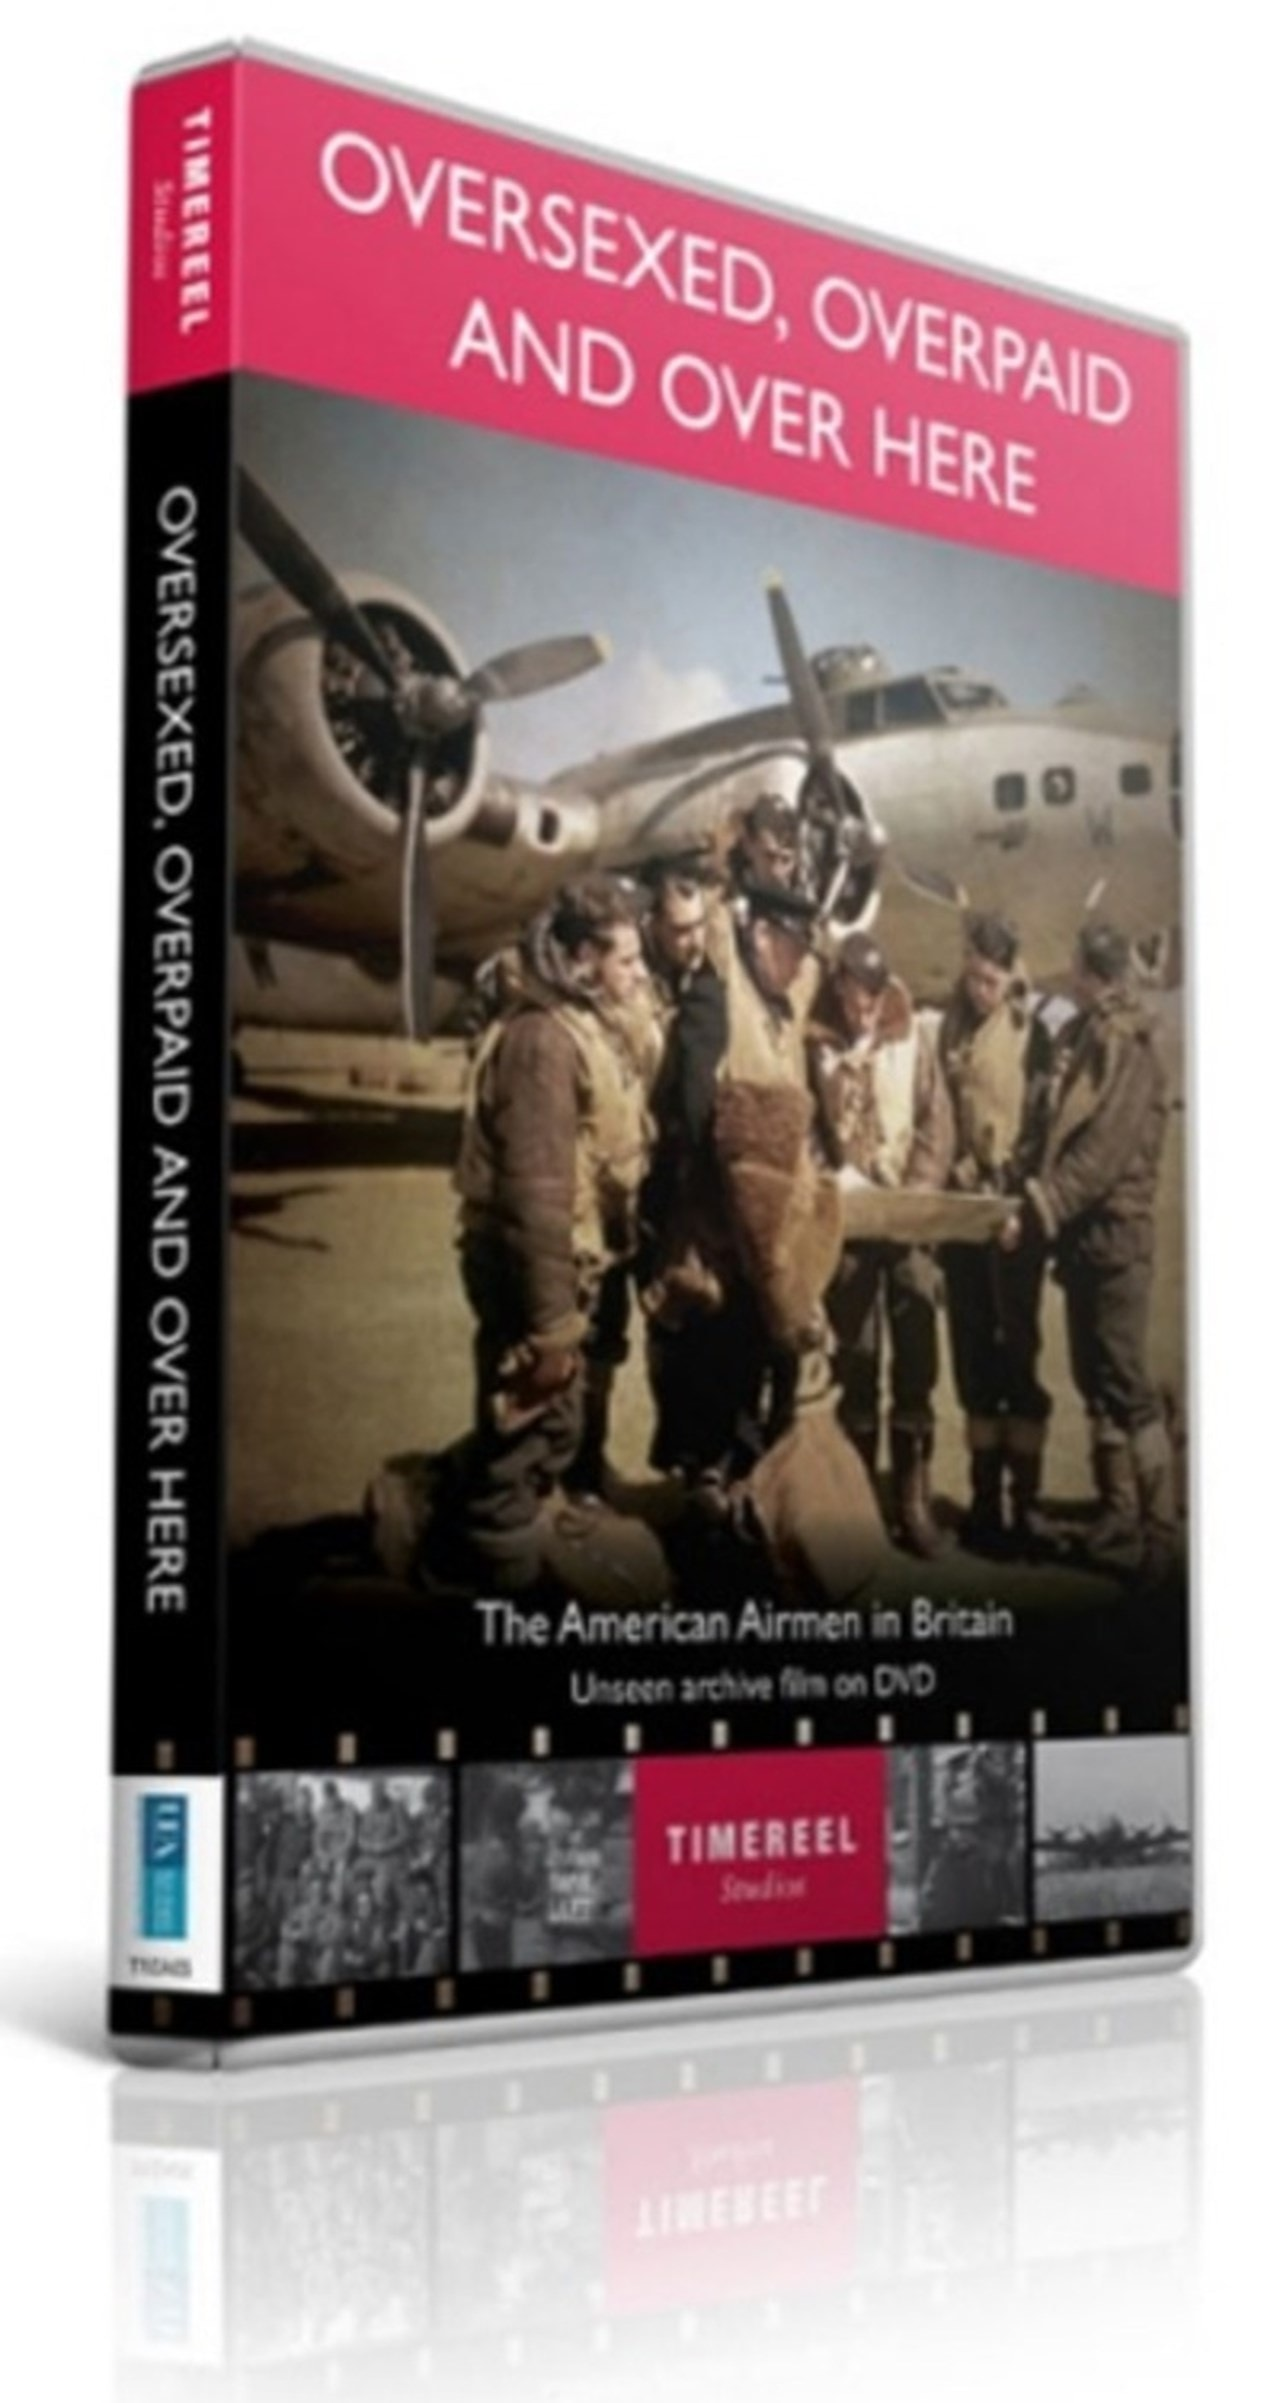 Oversexed, Overpaid and Over Here - The American Airmen in ... - 1